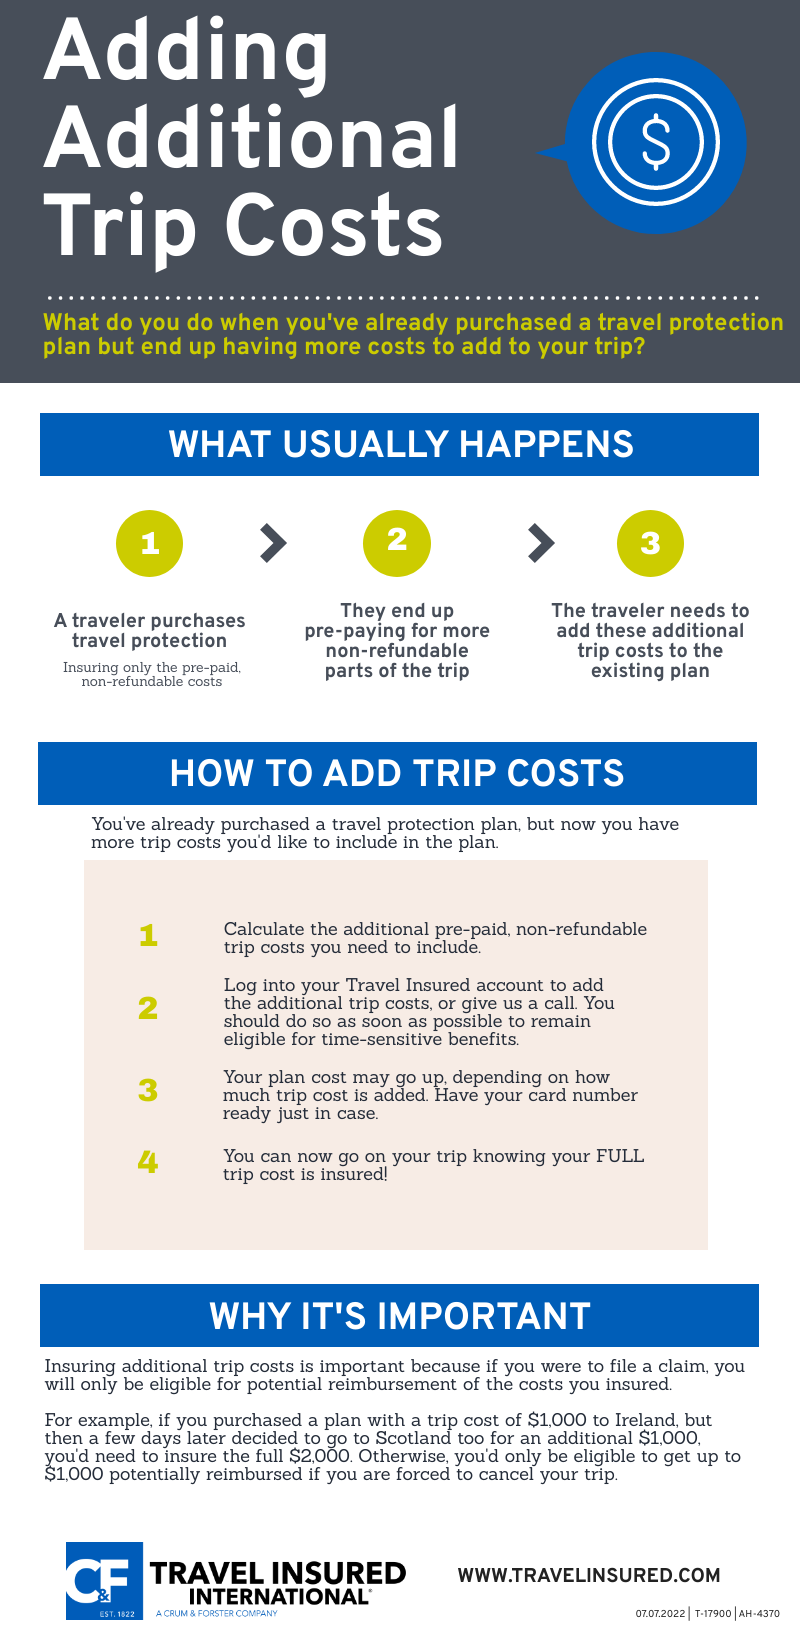 Additional Trip Costs